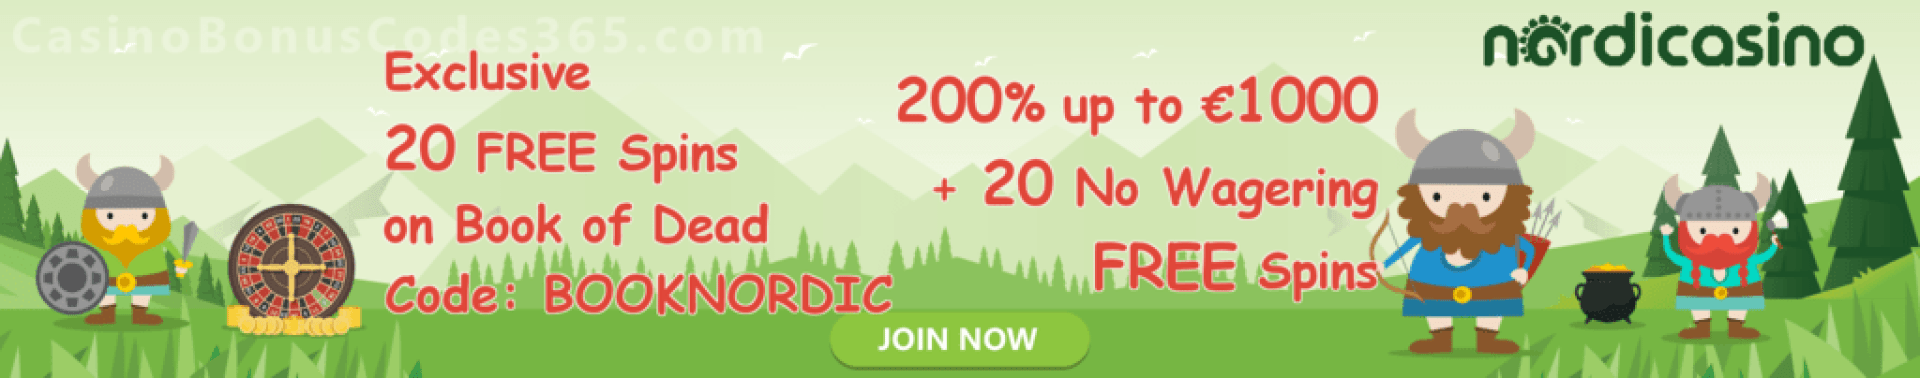 Nordicasino 20 FREE Spins on Book of Dead plus 200% up to €1000 plus 20 no wagering FREE spins